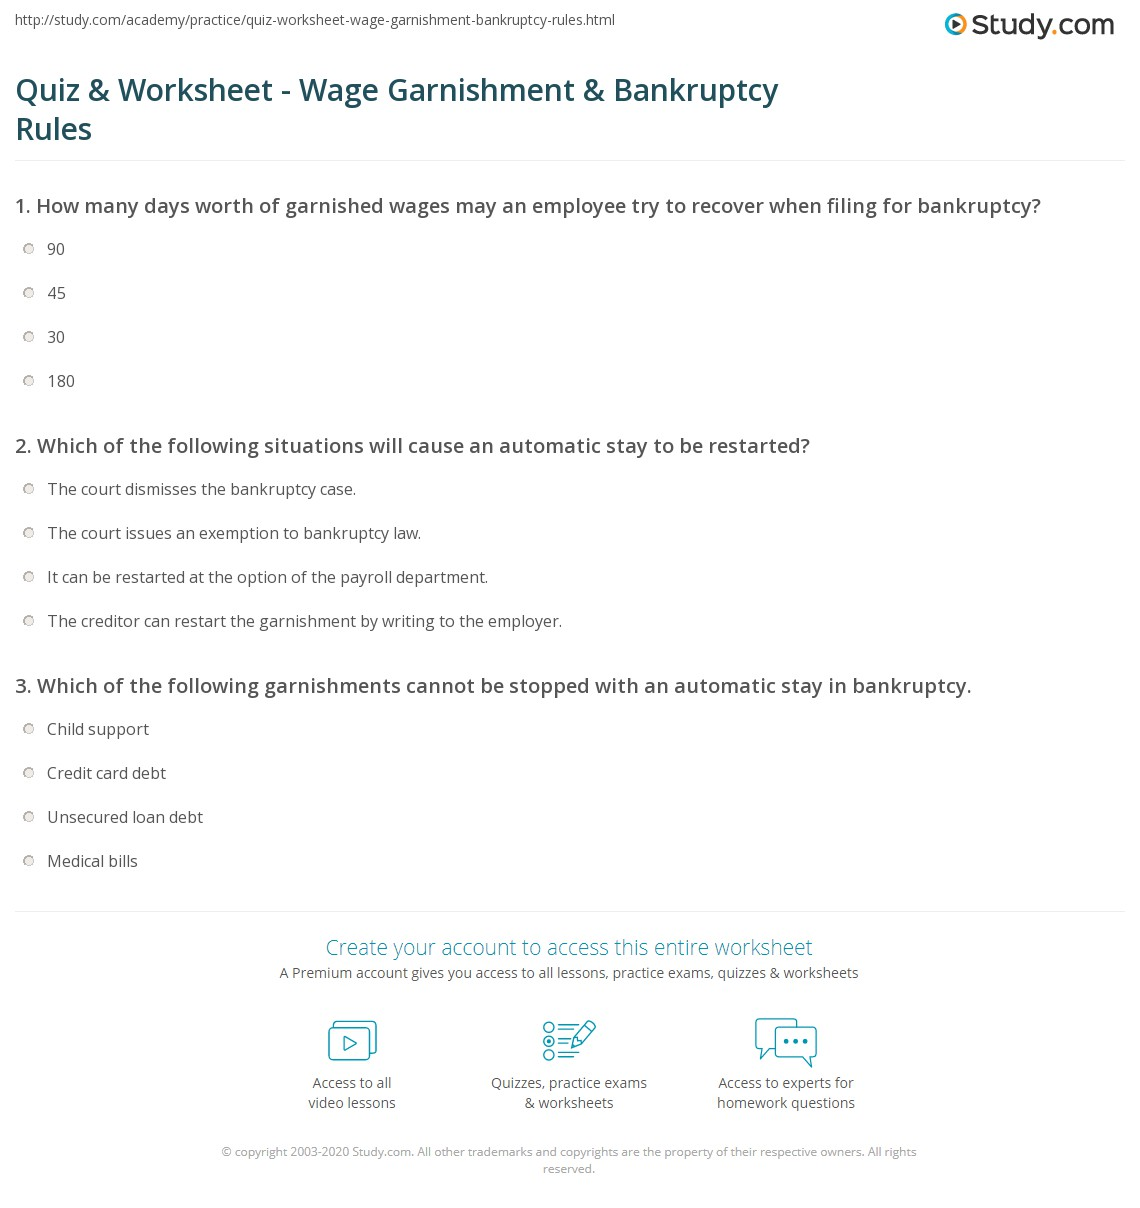 Worksheets Wage Garnishment Worksheet quiz worksheet wage garnishment bankruptcy rules study com print for stopping with worksheet